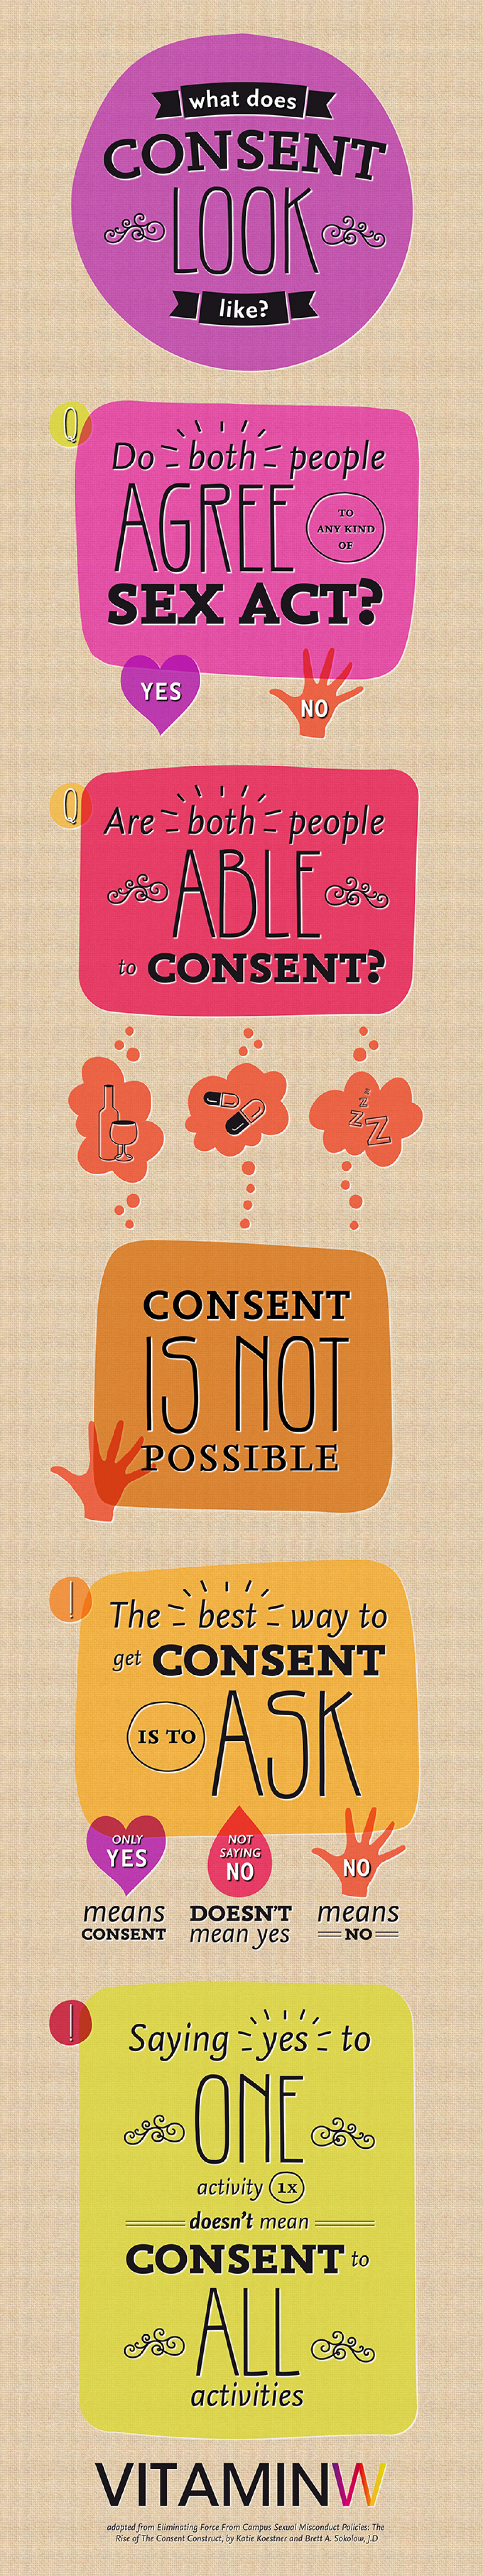 What Does Consent Look Like? Infographic